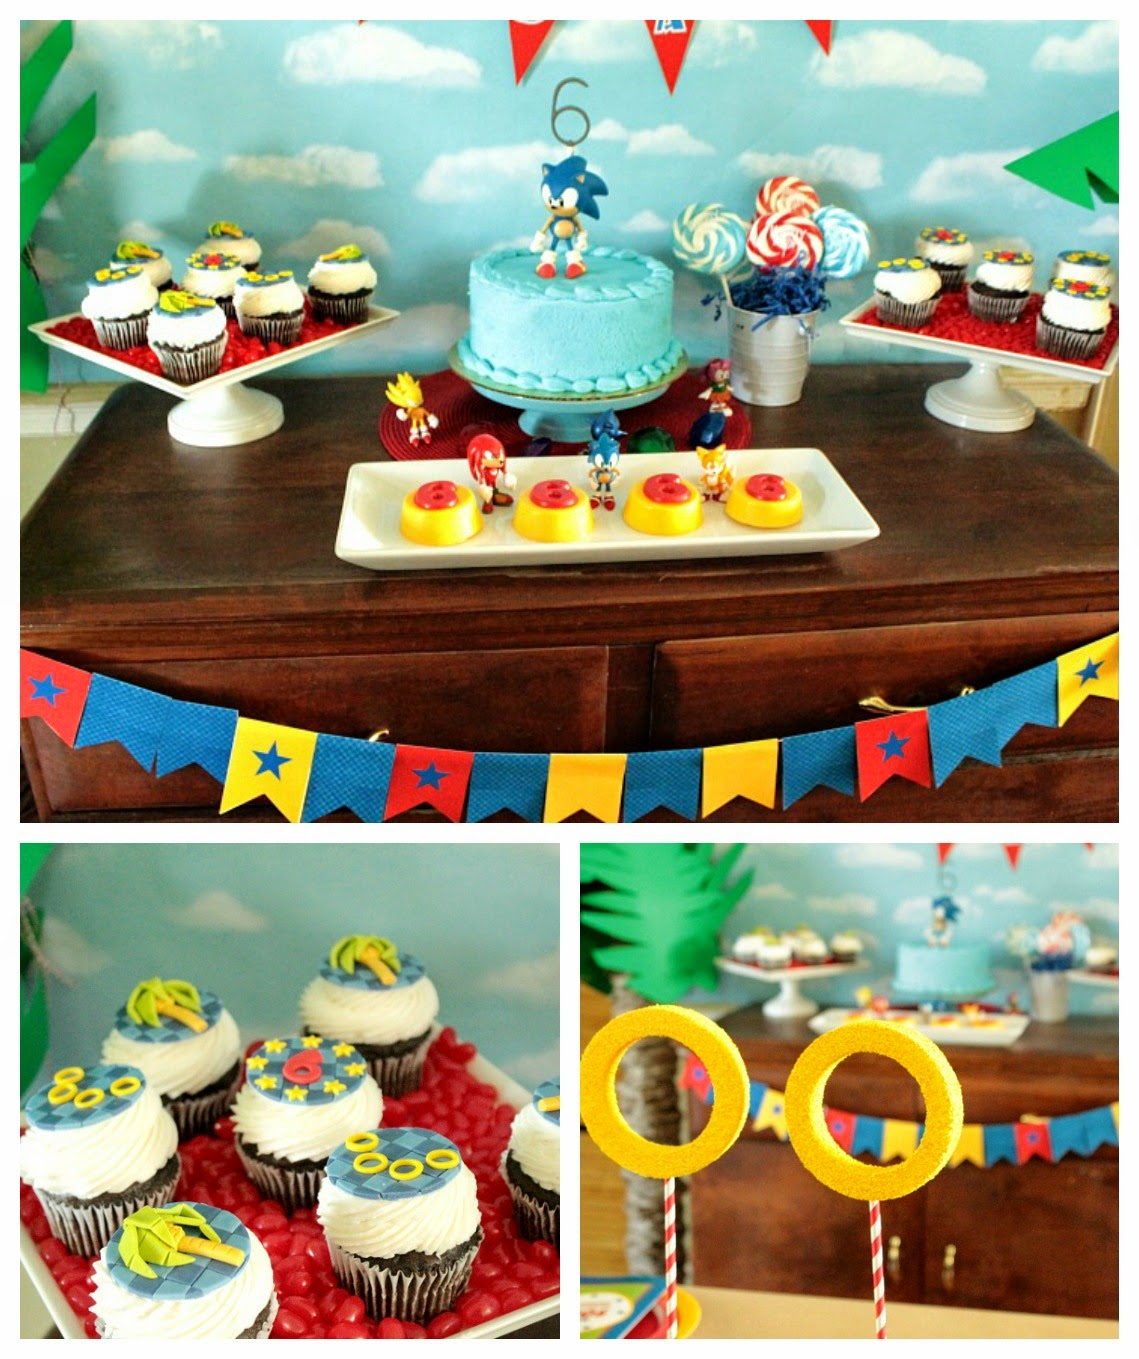 sonic the hedgehog cupcake toppers, sonic the hedgehog sweets table, sonic the hedgehog parties